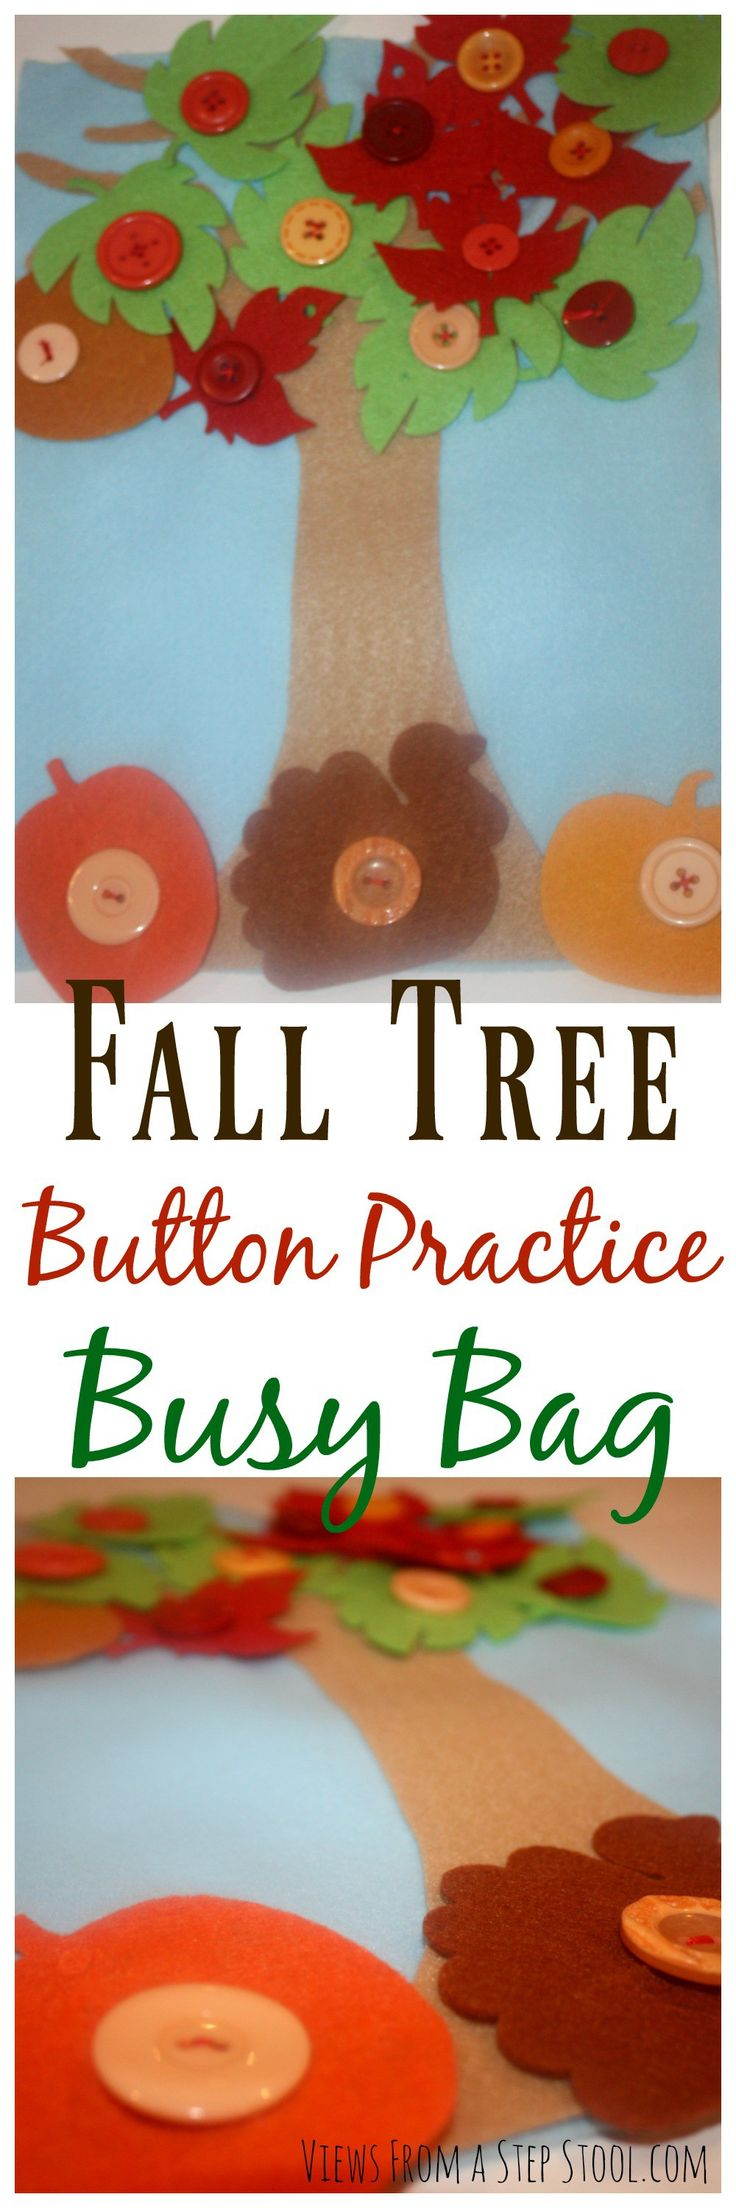 This button practice busy bag is themed for the fall with leaves